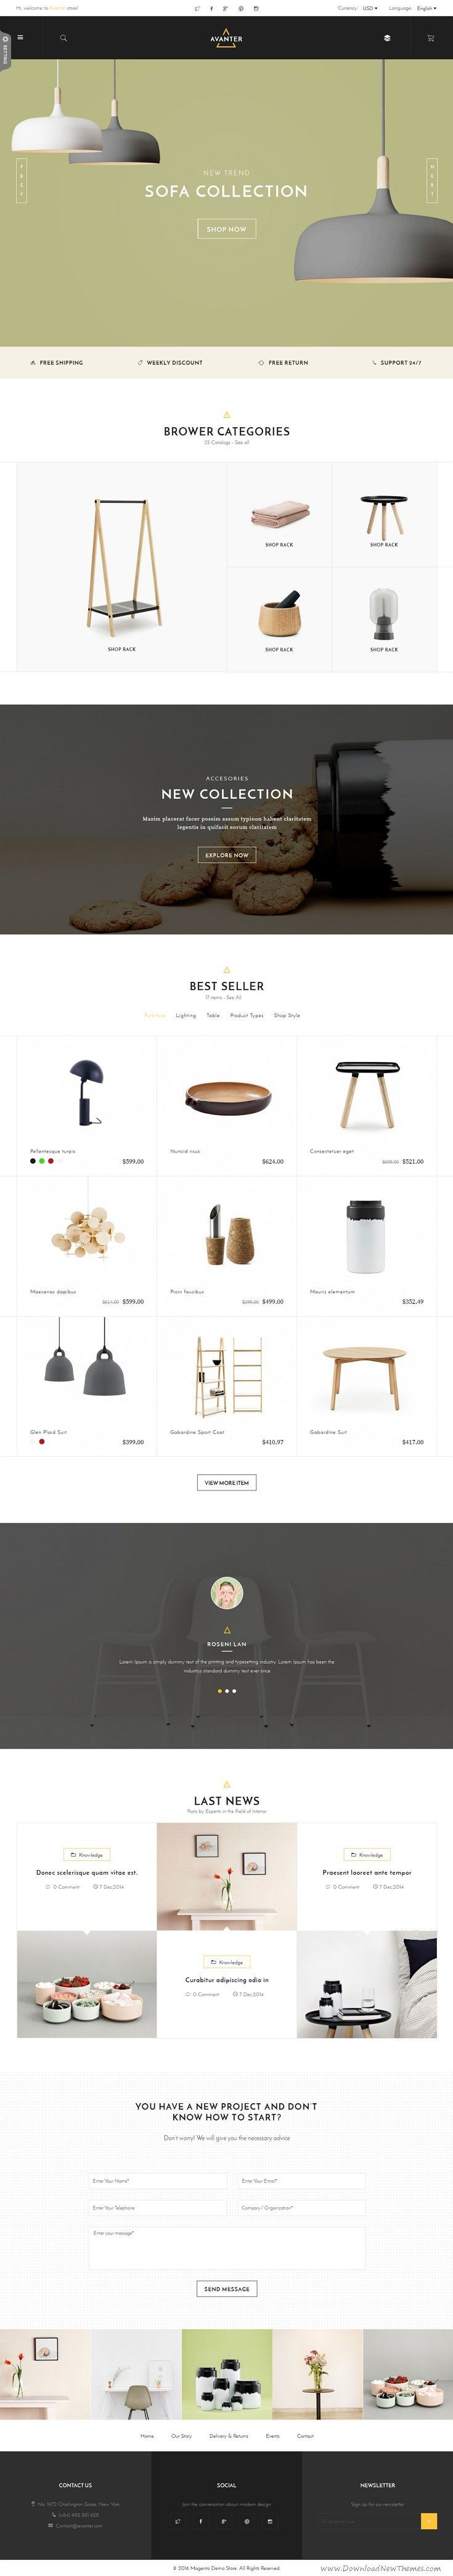 Avanter is a fully responsive #Magento Theme with a clean, minimalist and elegant design. The theme is so easy to customize, highly flexible with a powerful admin panel that help you easily build a fully-functional online store with eye-pleasing presence. #eCommerce #template